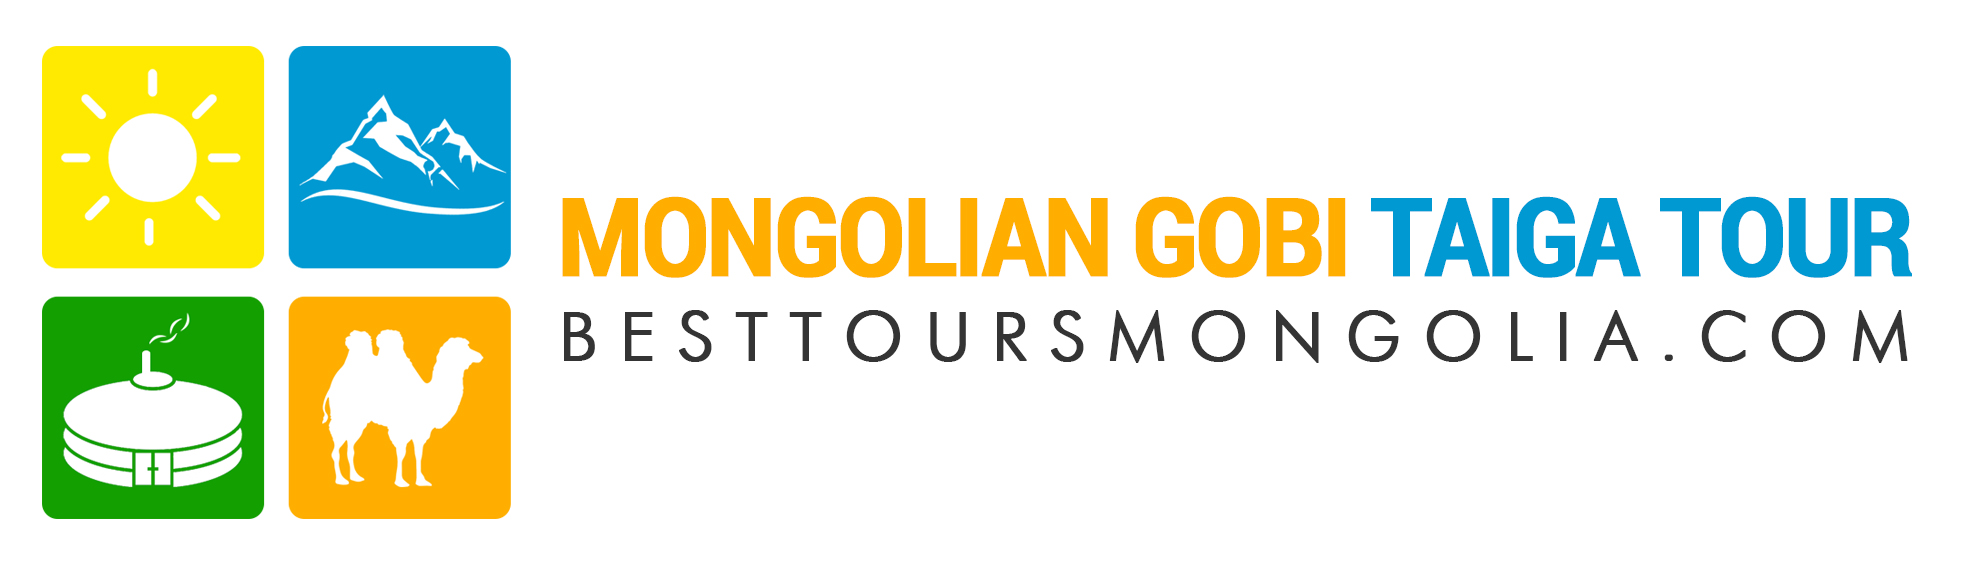 Best Tours Mongolia | Mongolia Tour Operator | Mongolian Travel Agency | Travel to Mongolia | Welcome to Mongolia | Private Tours